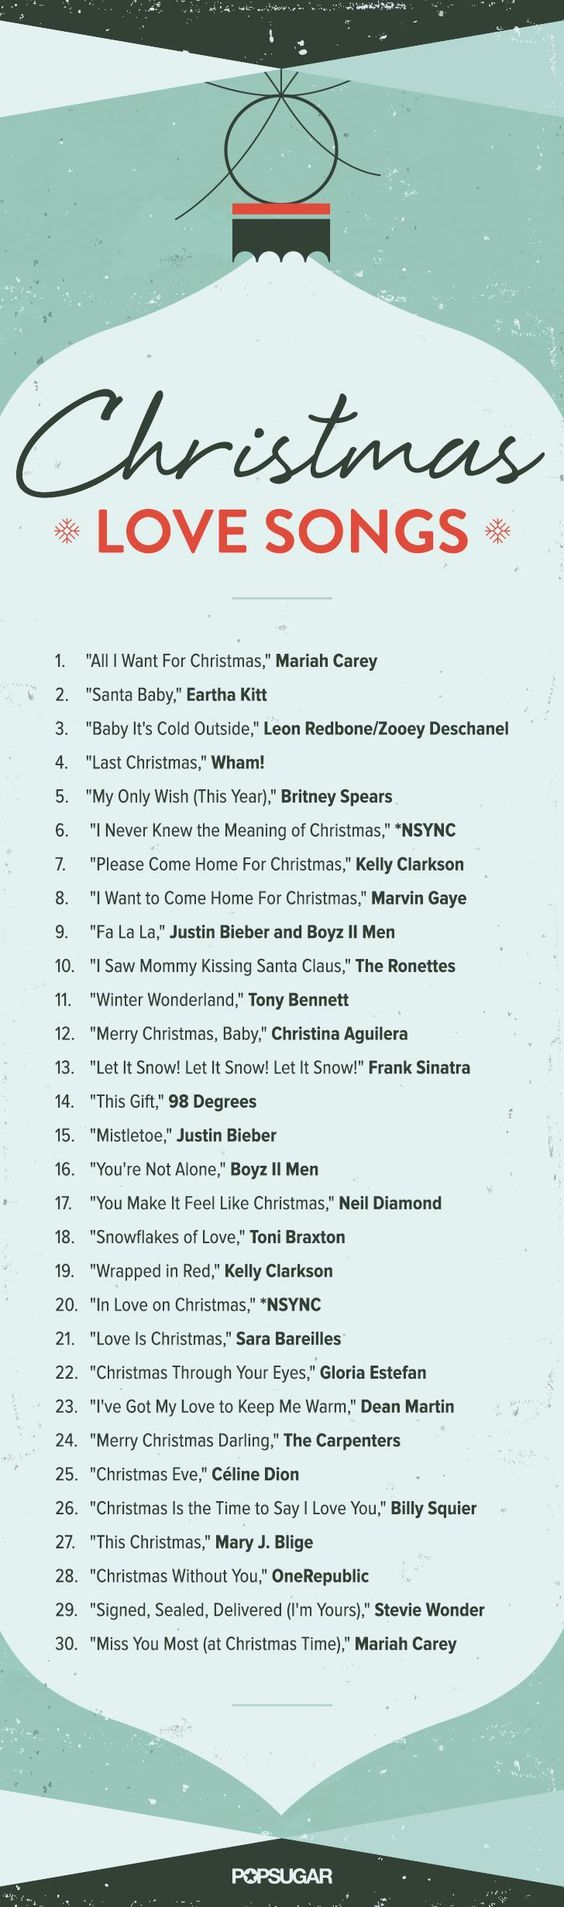 Christmas love songs: listen to the Spotify playlist now!